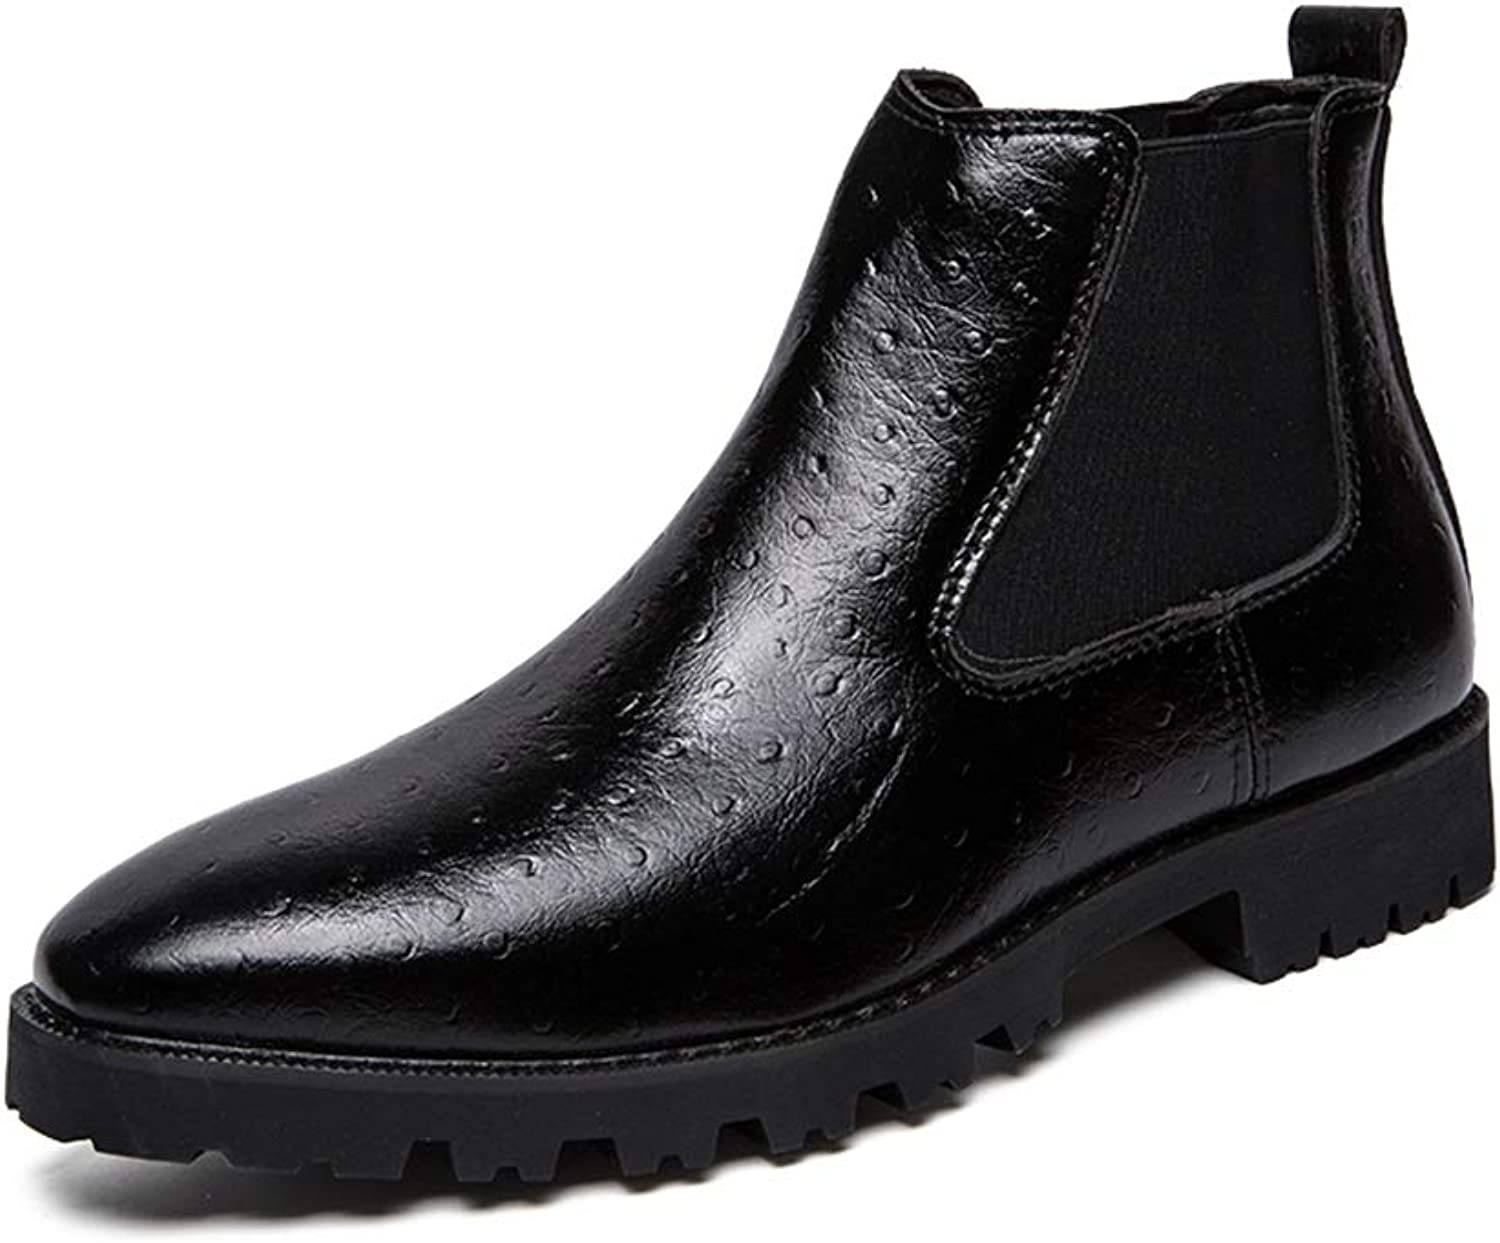 Men's Fashion Ankle Work Boot Casual Comfortable Cover with Embossed Feet High Top Boot